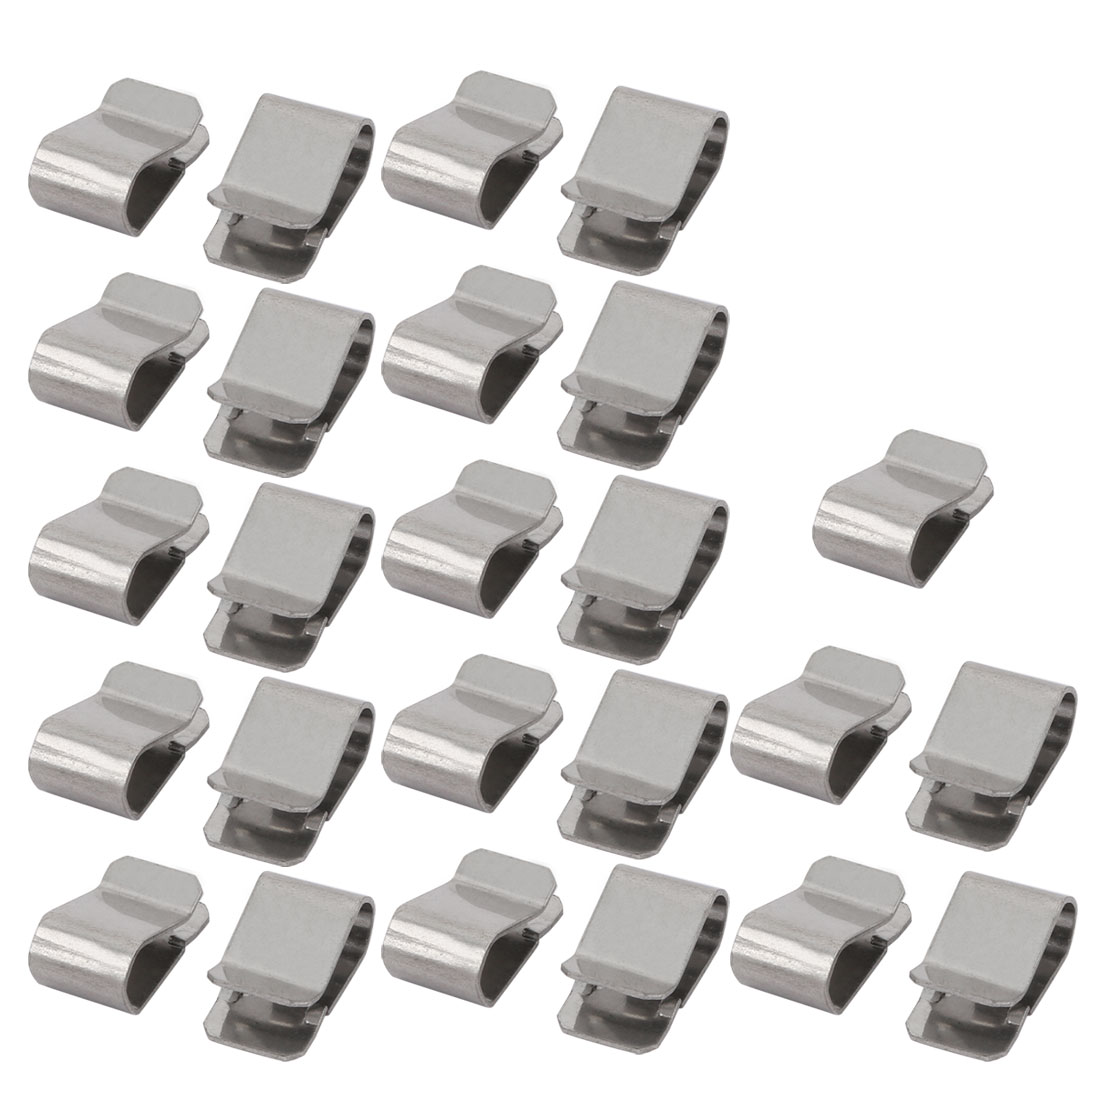 25pcs 21mmx12mm 304 Stainless Steel U Clip Silver Tone for 3.5mm Pipe